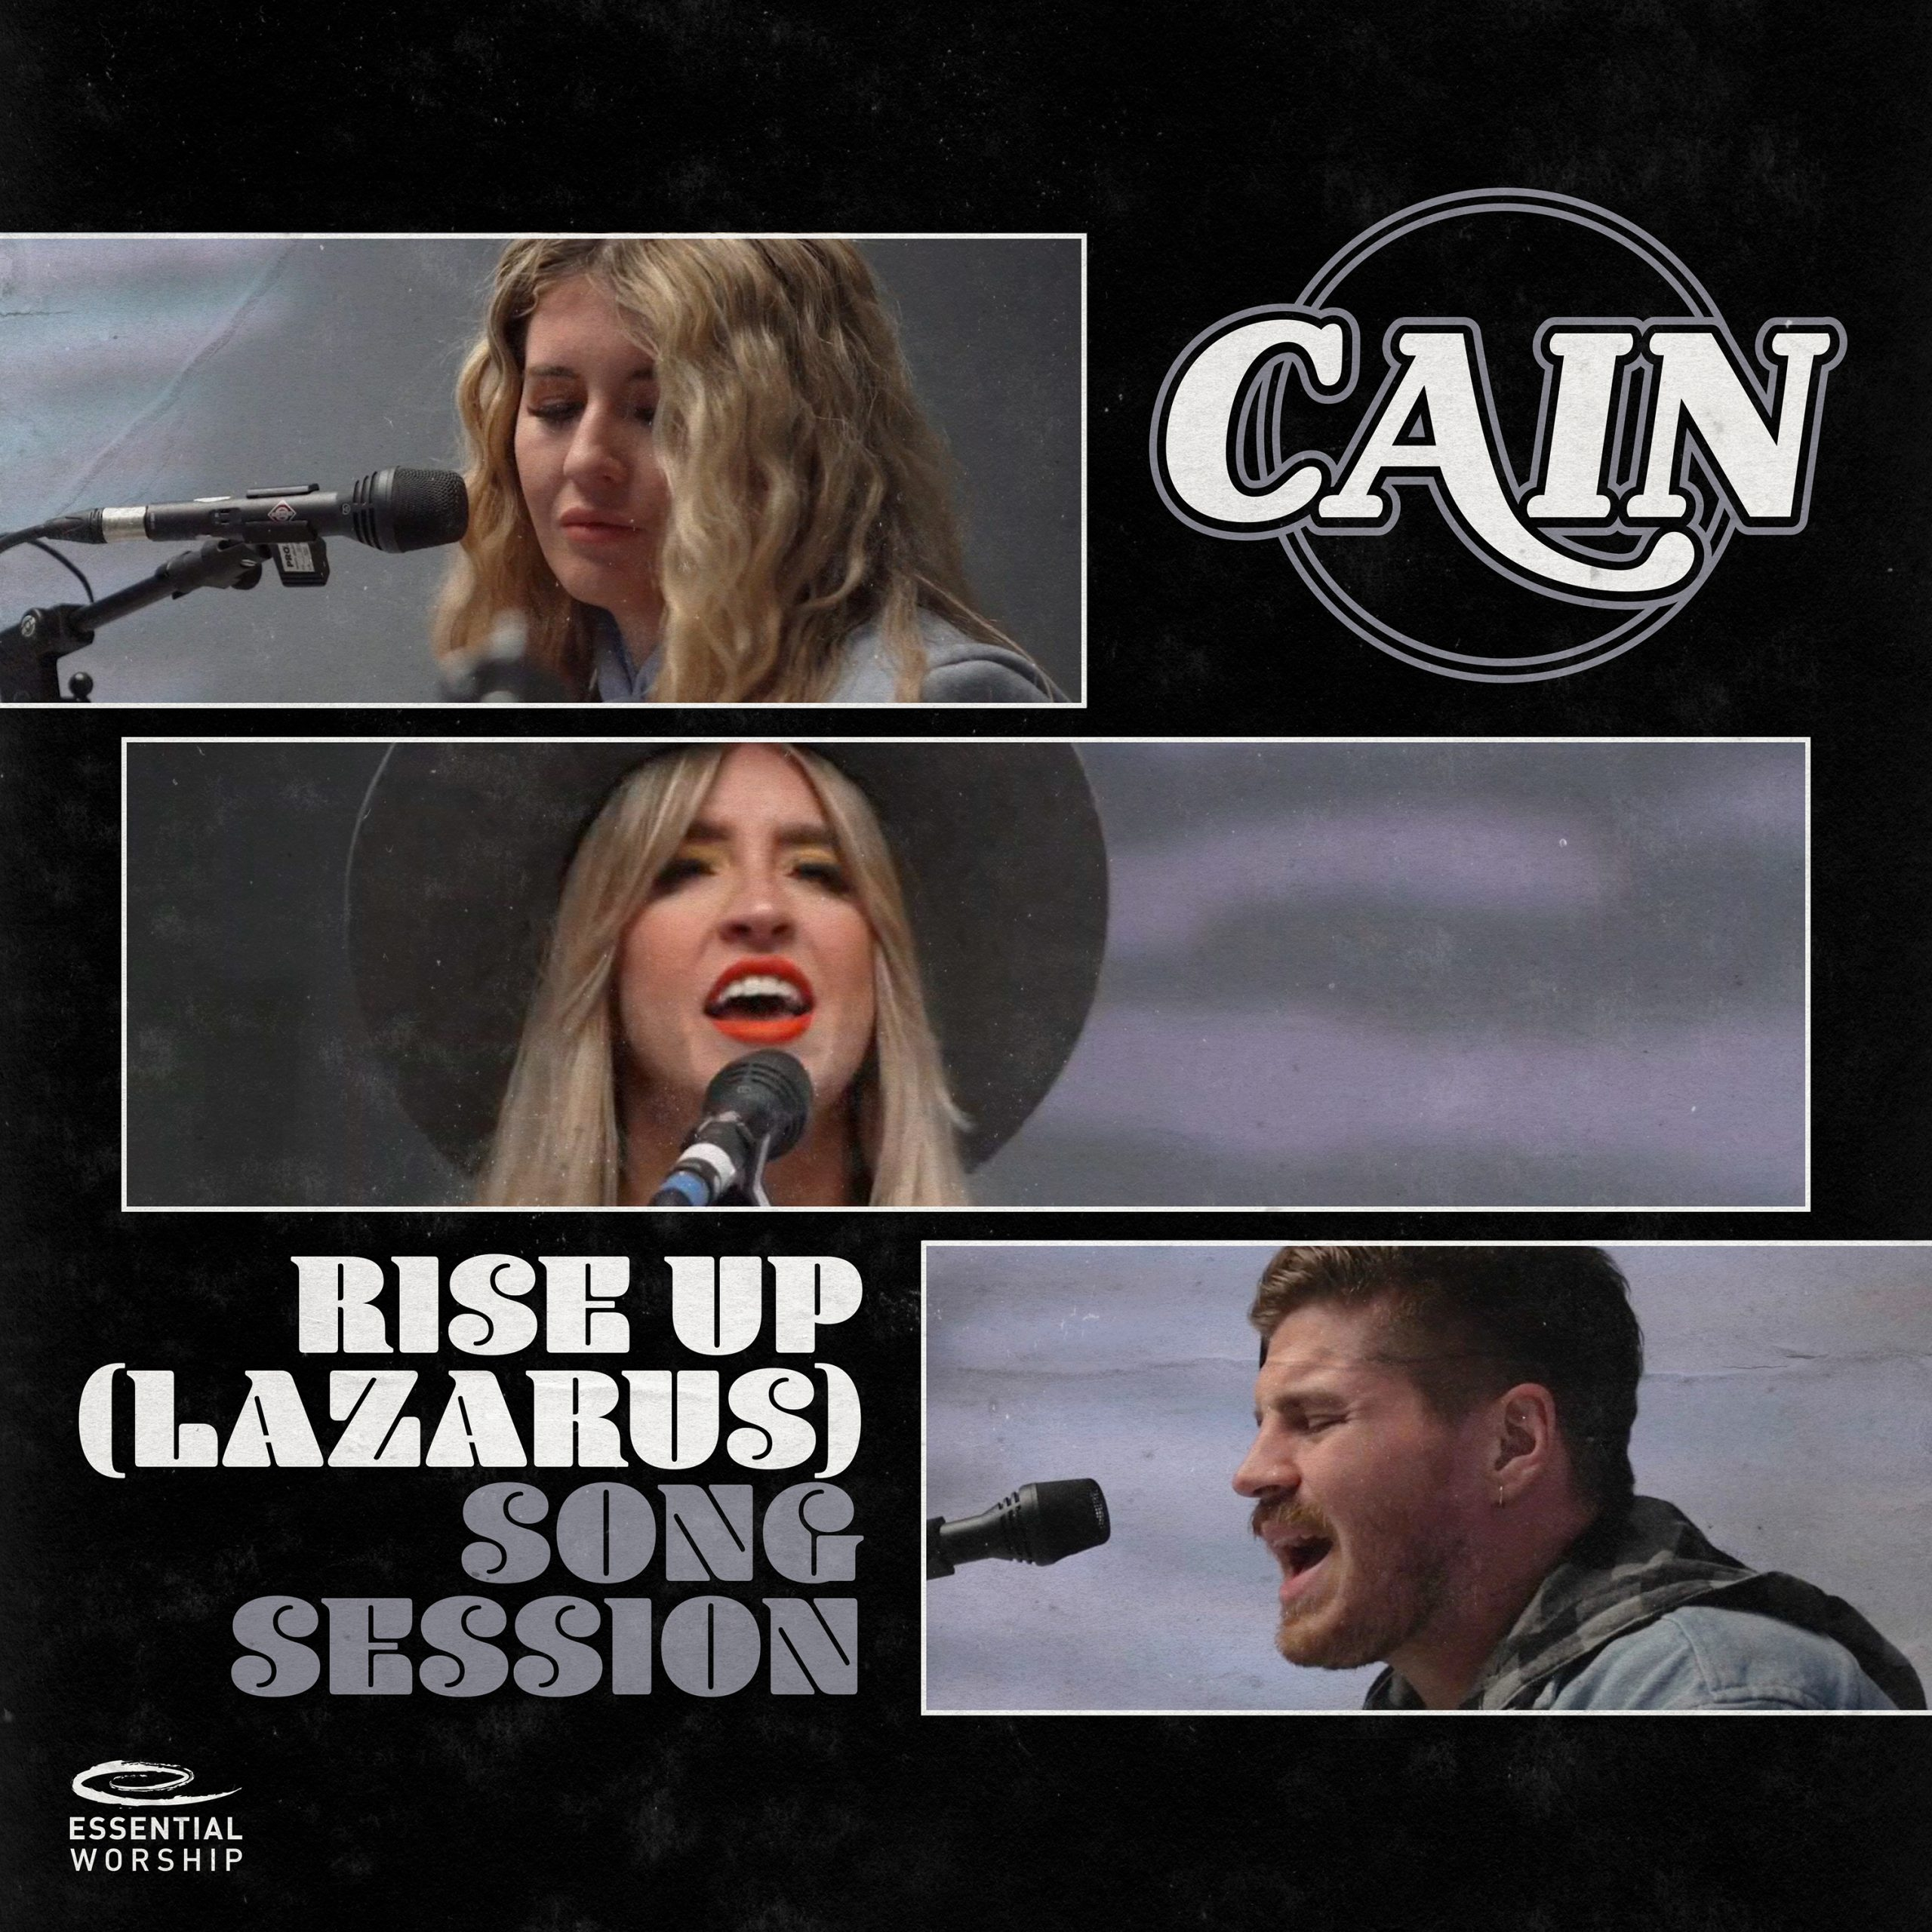 """Rise Up (Lazarus)"" Song Session"